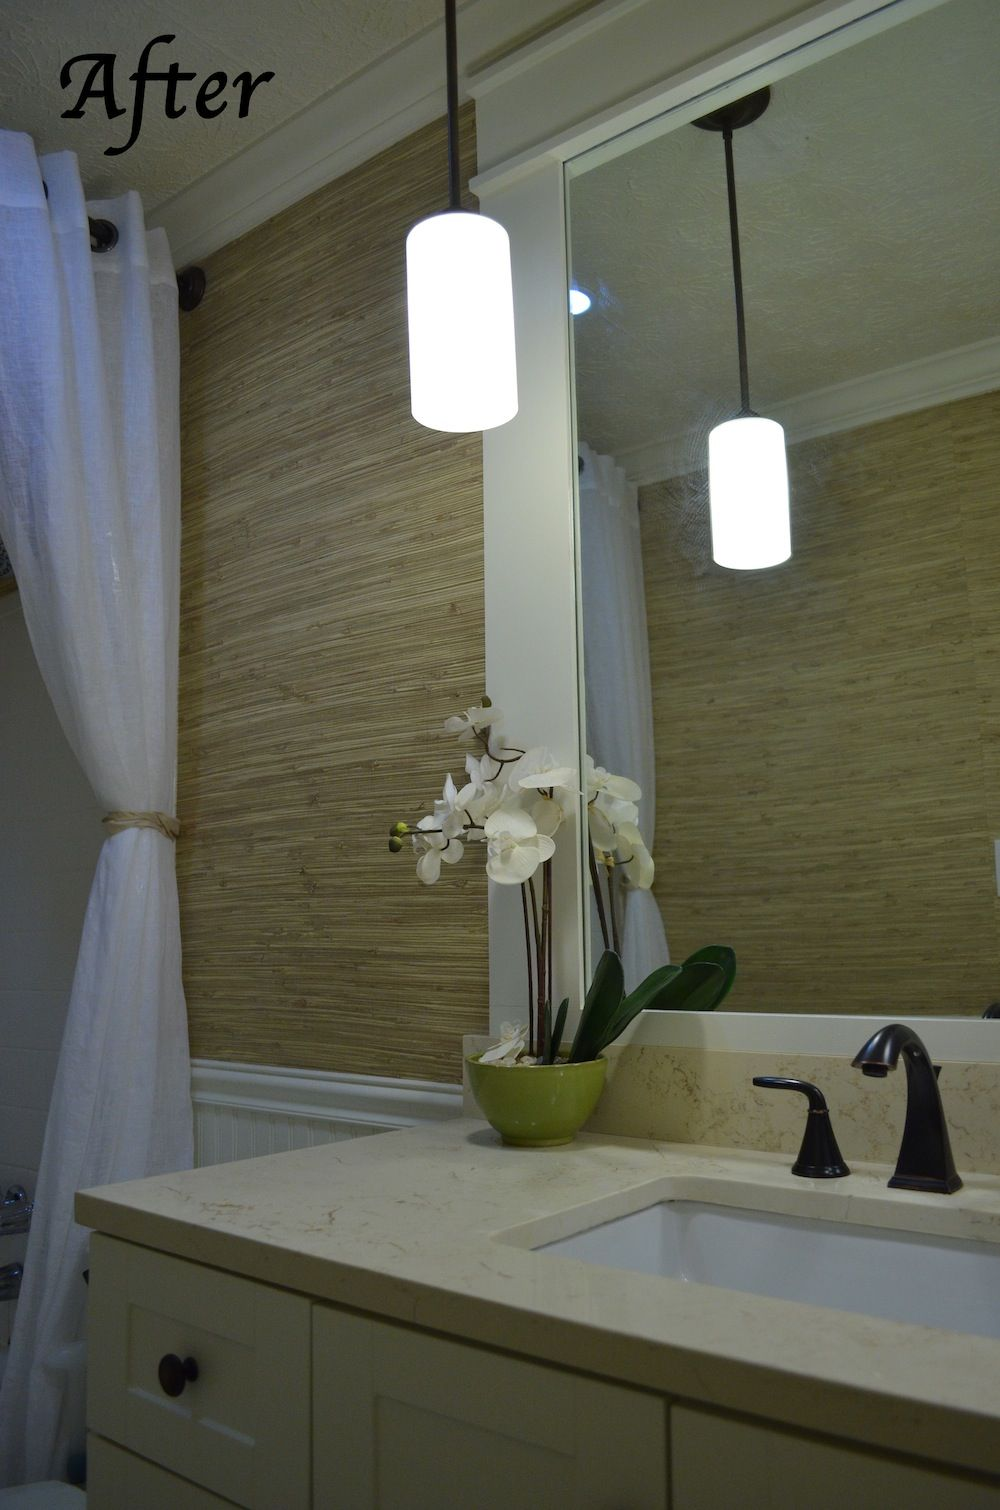 Paint Color For Small Bathroom With No Natural Light